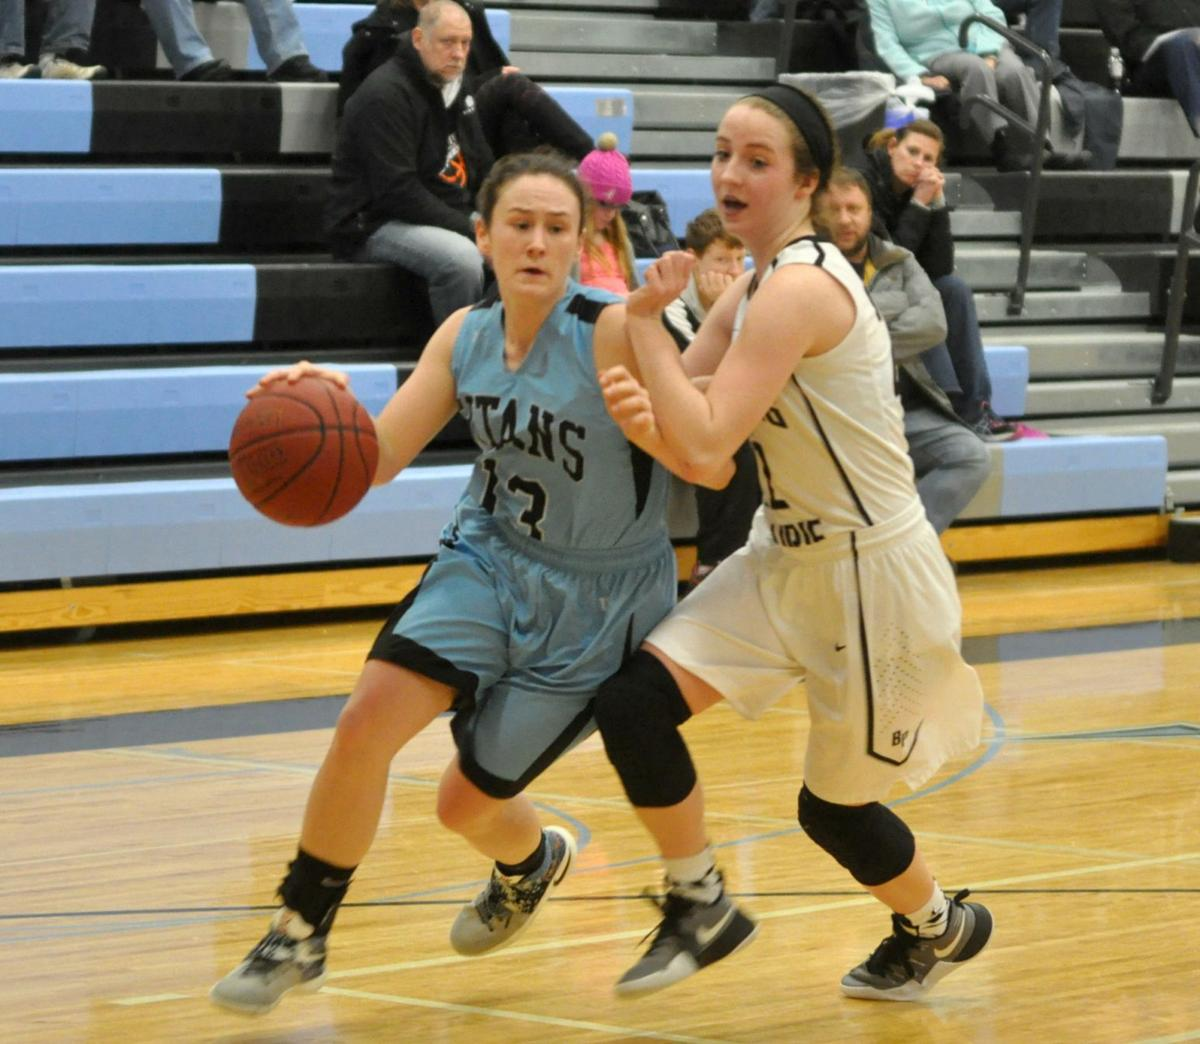 Titans get back on track with blowout victory over Blooming Prairie